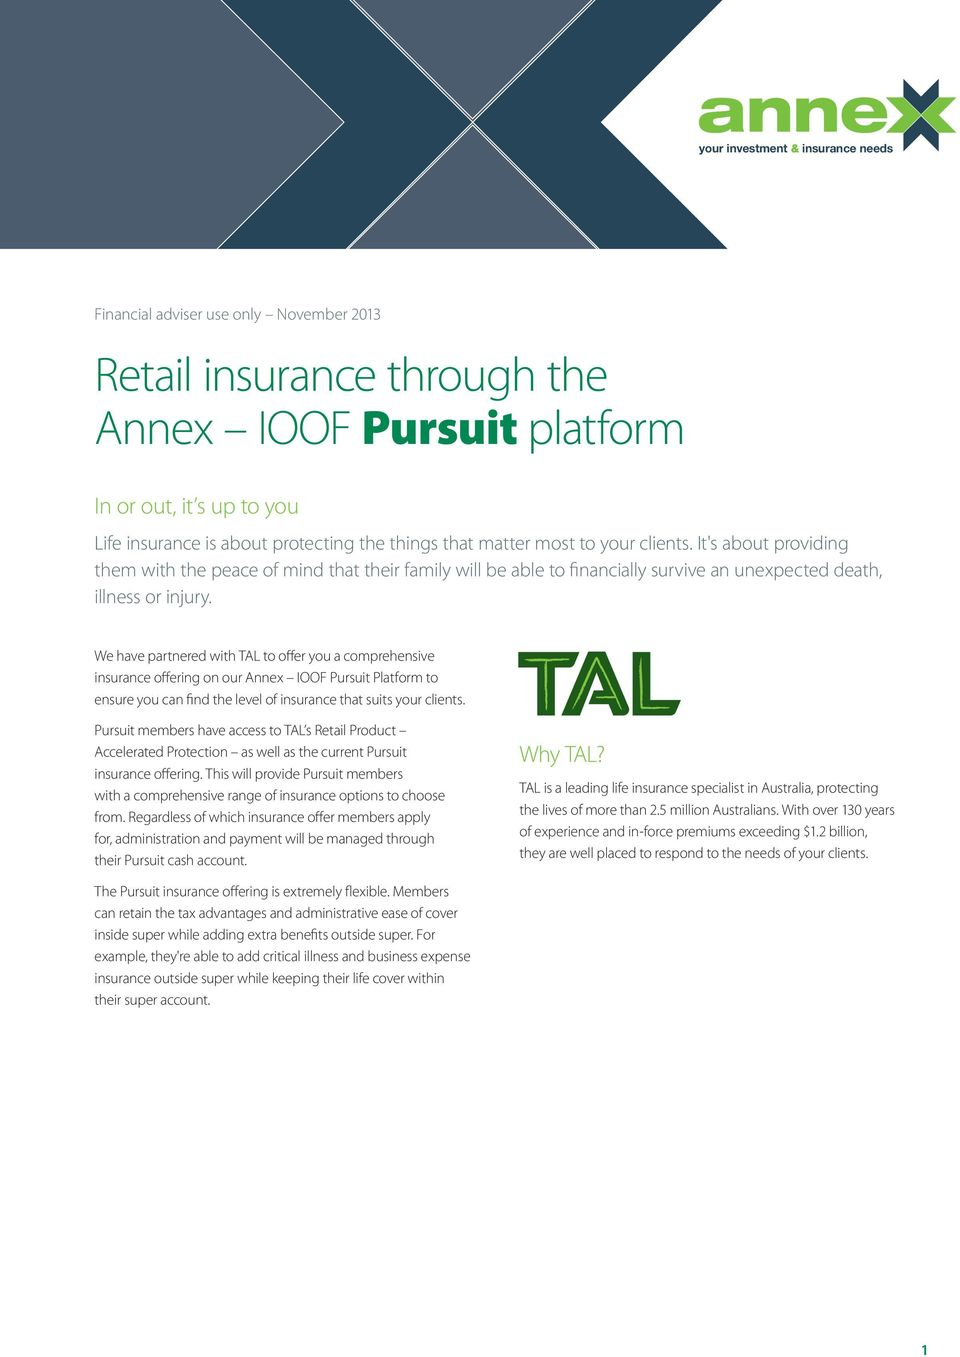 We have partnered with TAL to offer you a comprehensive insurance offering on our Annex IOOF Pursuit Platform to ensure you can find the level of insurance that suits your clients.